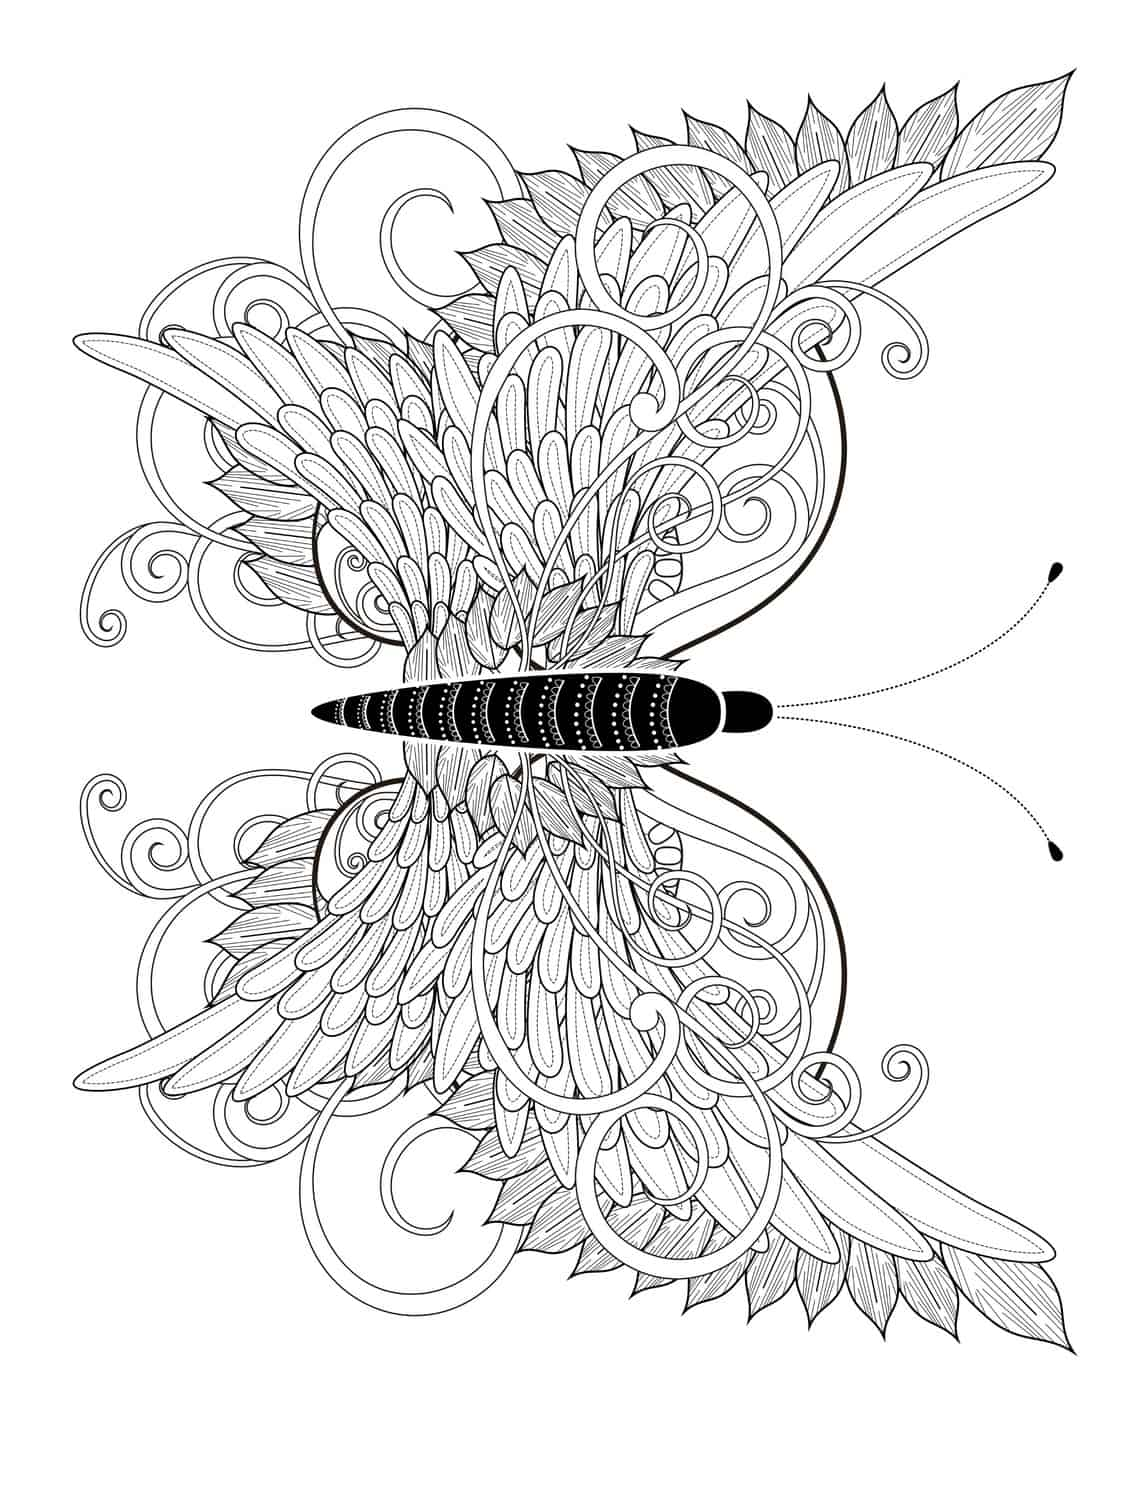 23 free printable insect animal adult coloring pages for Adult coloring pages to print